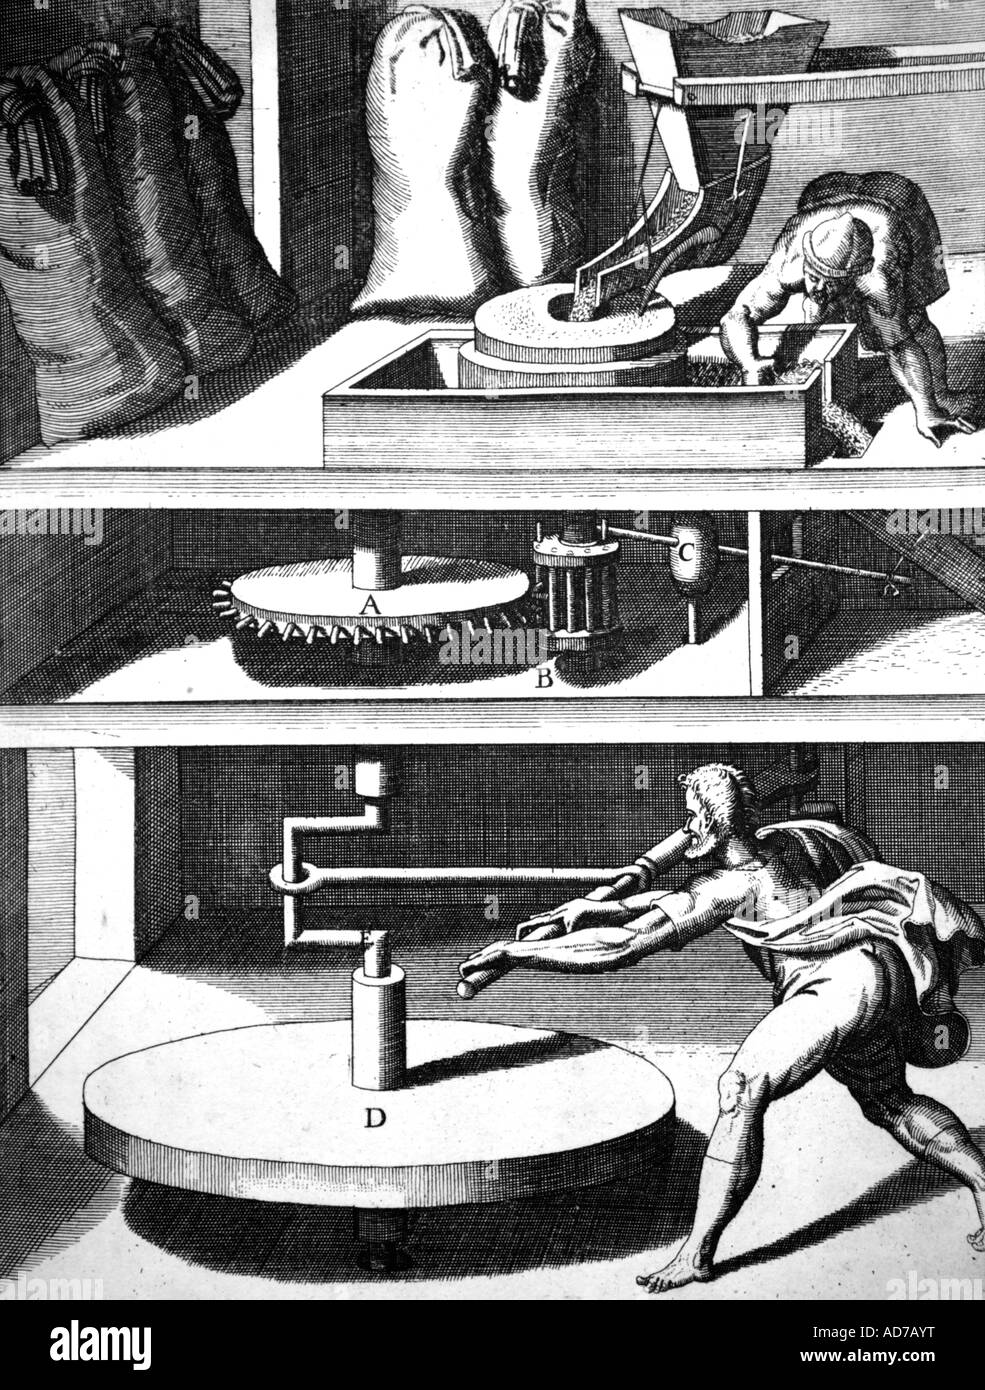 Hand Powered Milling Machine 17th Century Engraving - Stock Image